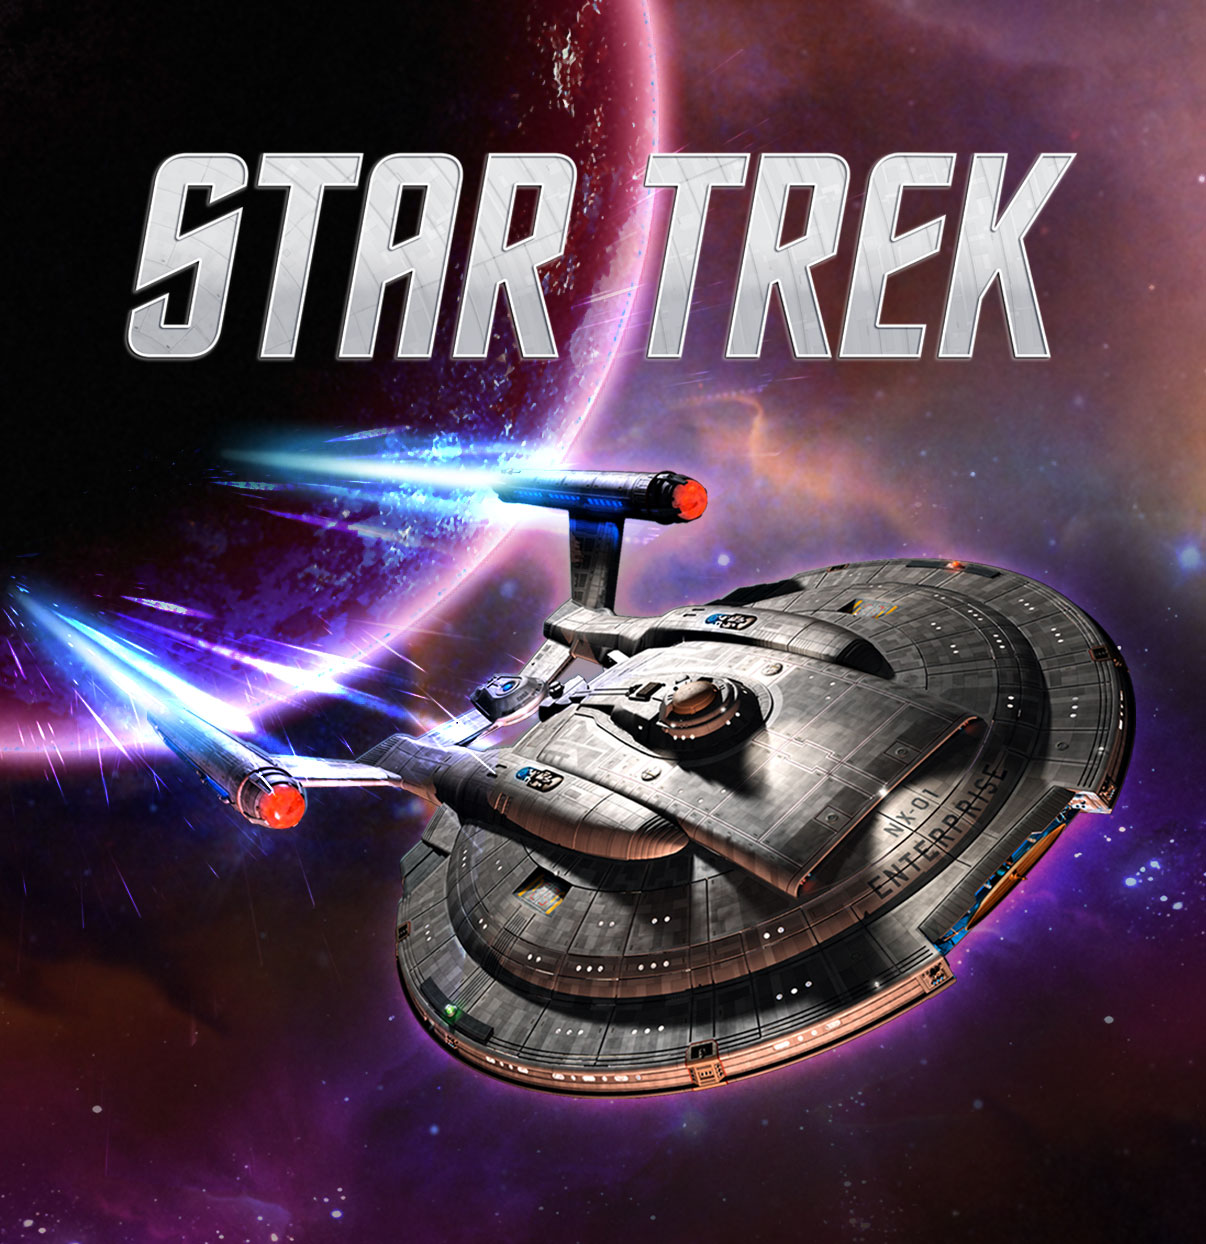 Star Trek mobile